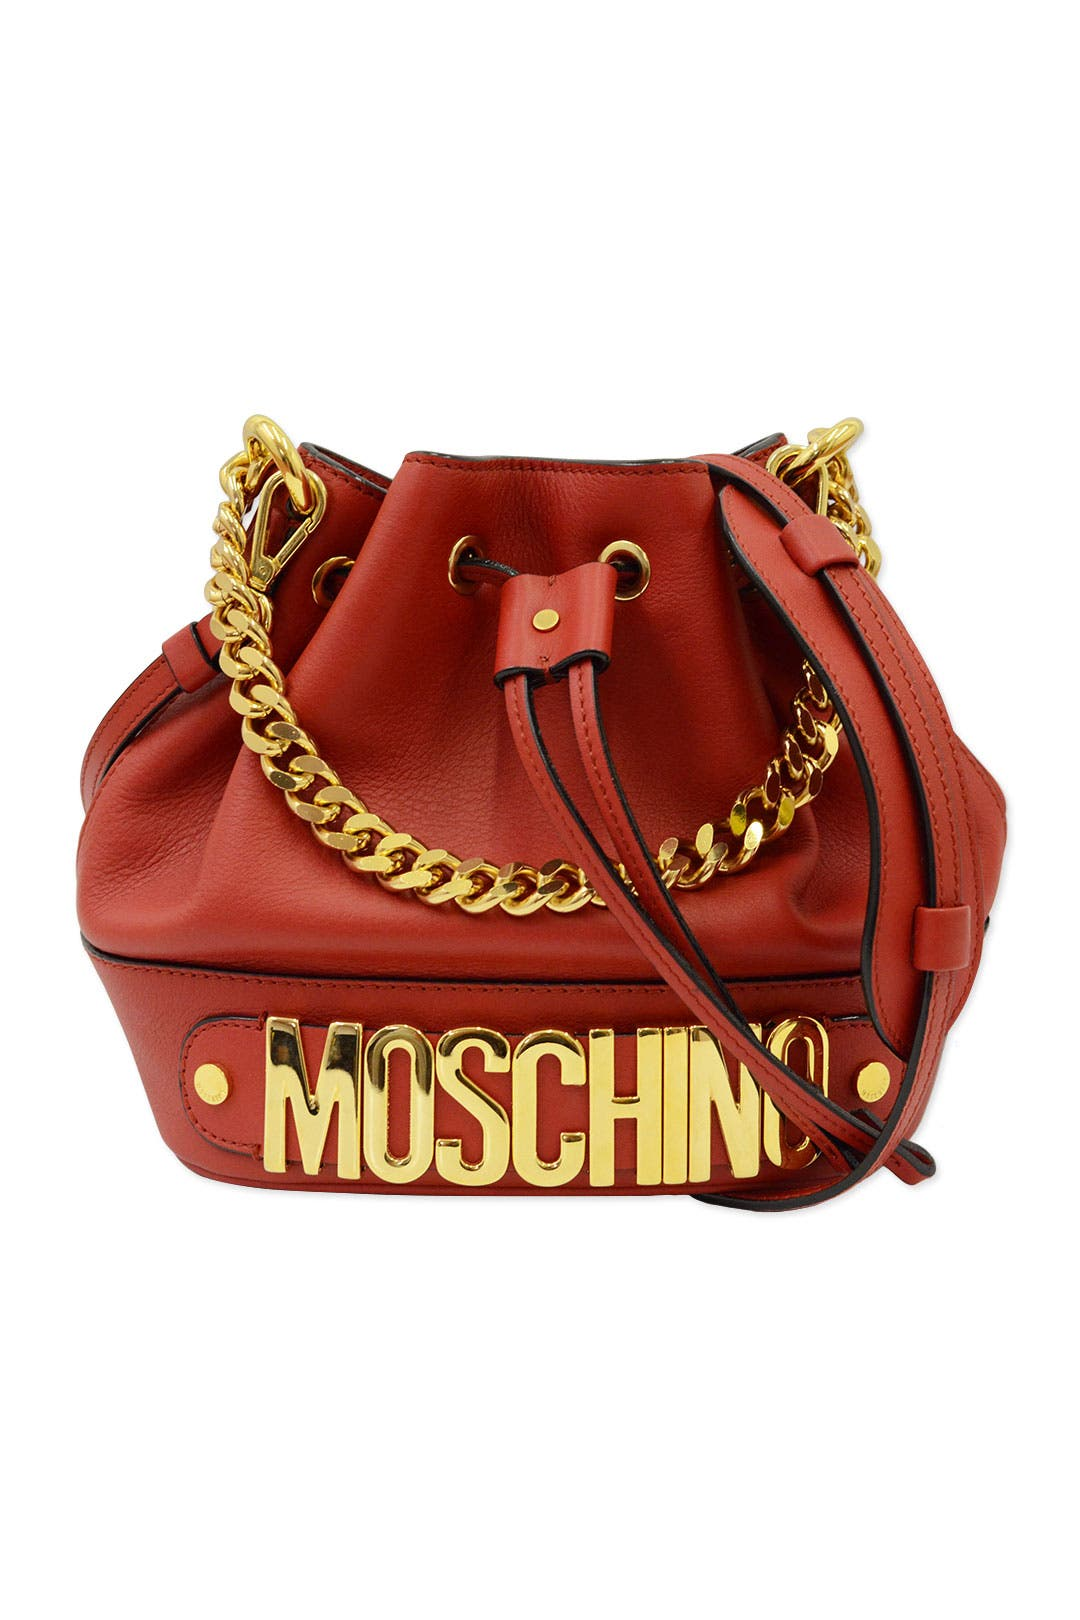 Rouge in Love Shoulder Bag by Moschino Accessories